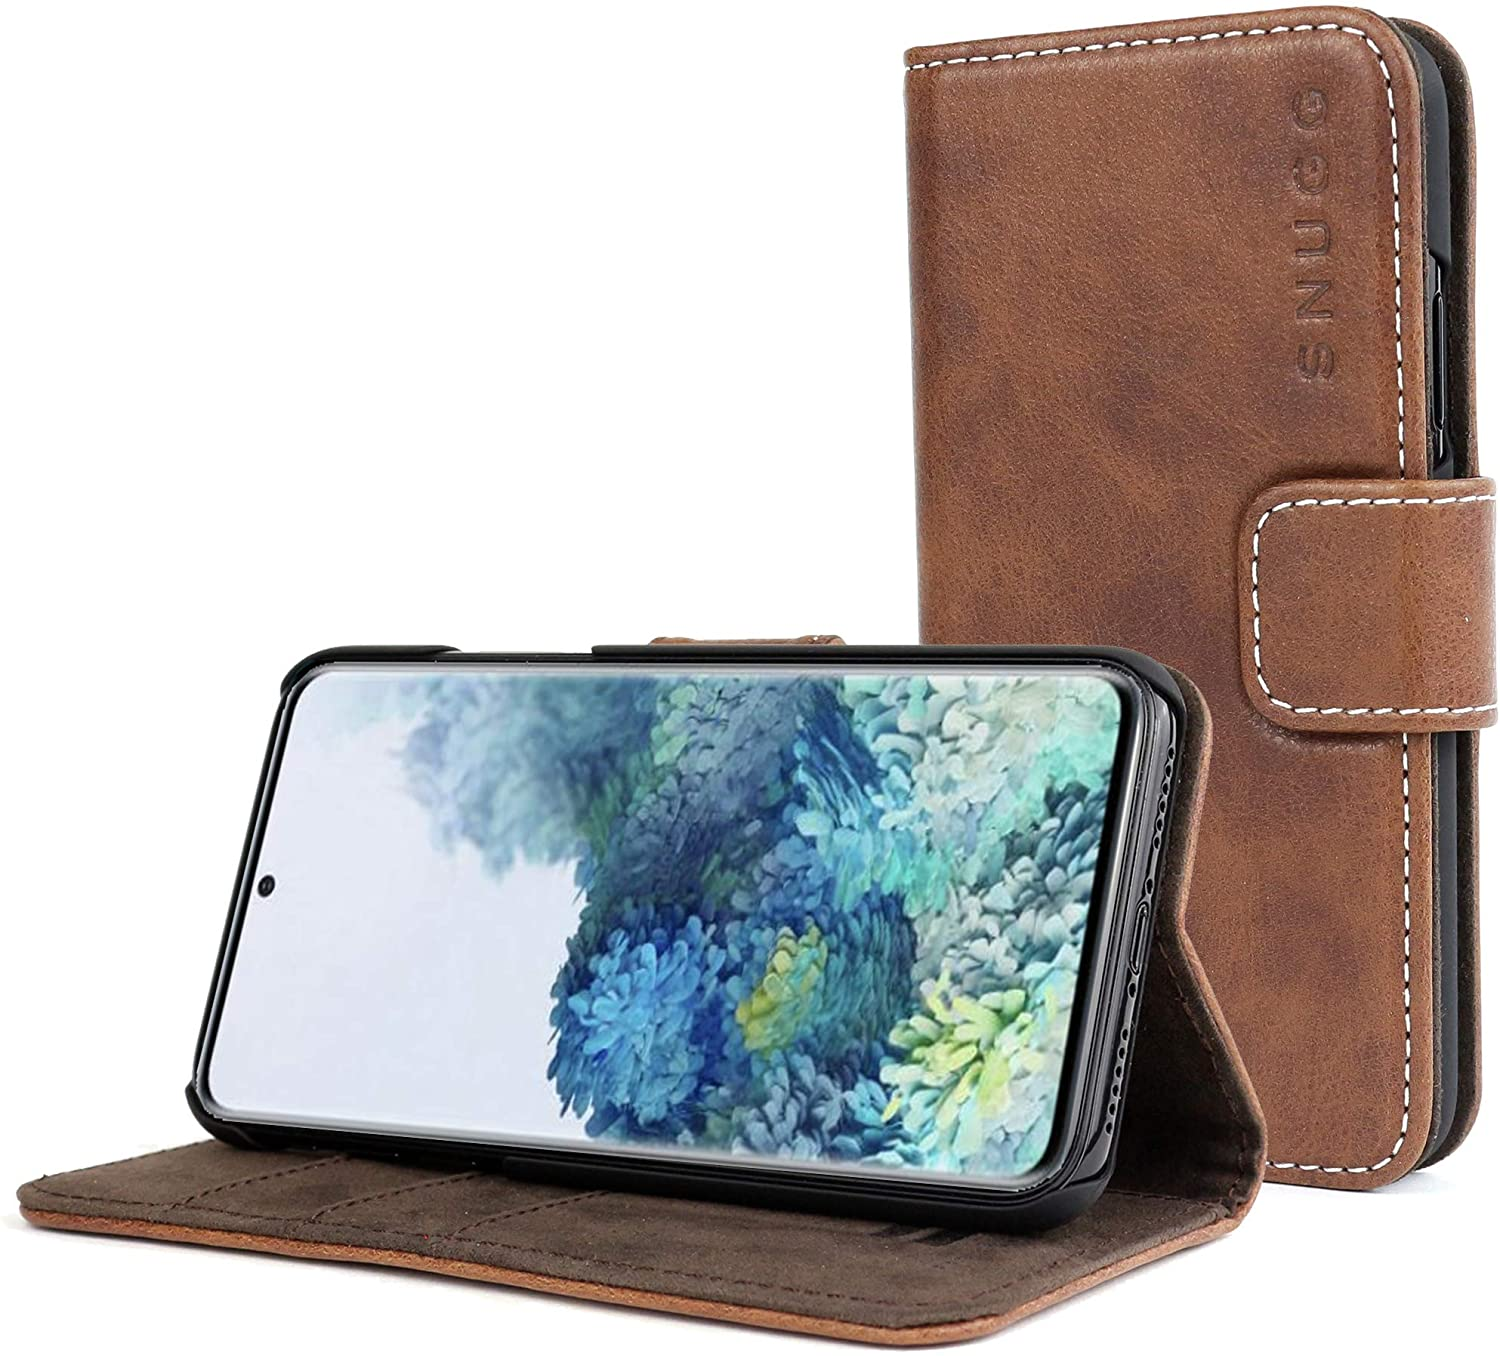 Snugg Samsung Galaxy S20 Plus Wallet Case – + Leather Card Case Wallet with Handy Stand Feature – Legacy Series Flip Phone Case Cover in Distressed Brown